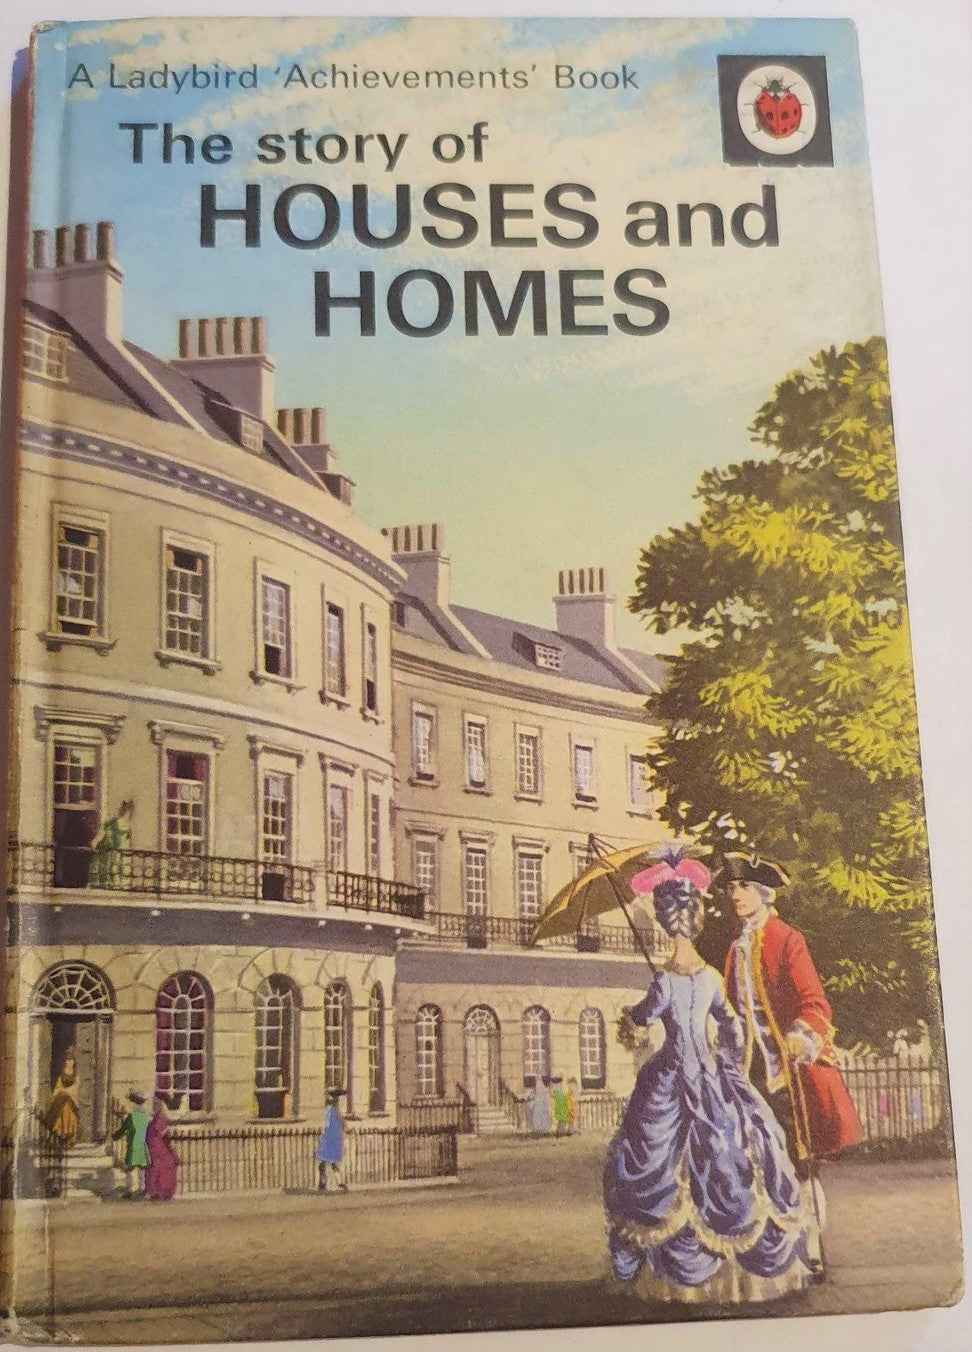 The Story of Houses and Homes (1 May 1974 - 15 June 1975)